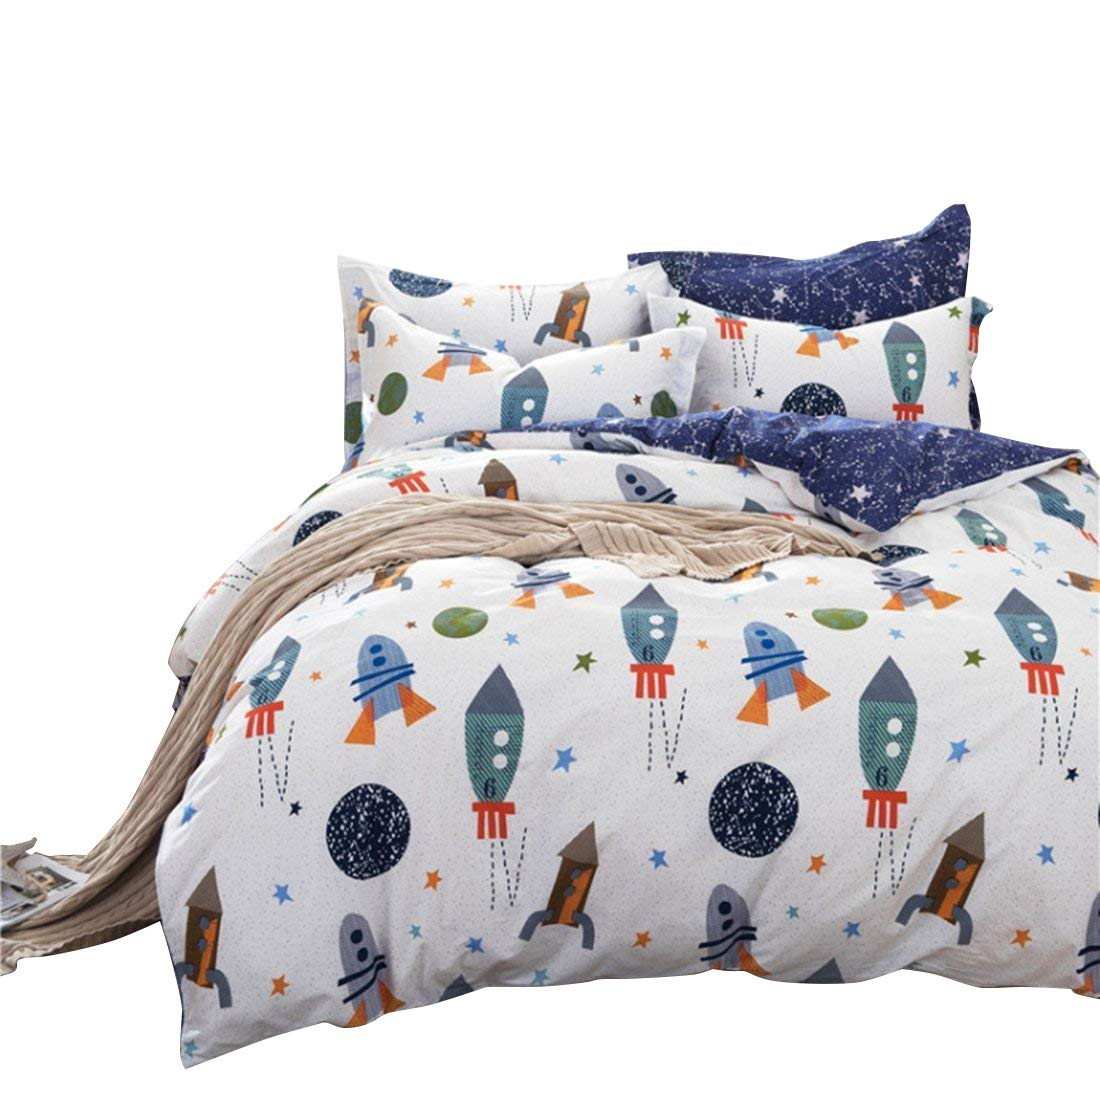 High Quality HNNSI Cotton Space Kids Boys Bedding Sets 4 Piece Full Size, Kids Duvet  Cover With Flat Sheets, Rocket Galaxy Comforter Cover For Children Teens  (Full Flat ...